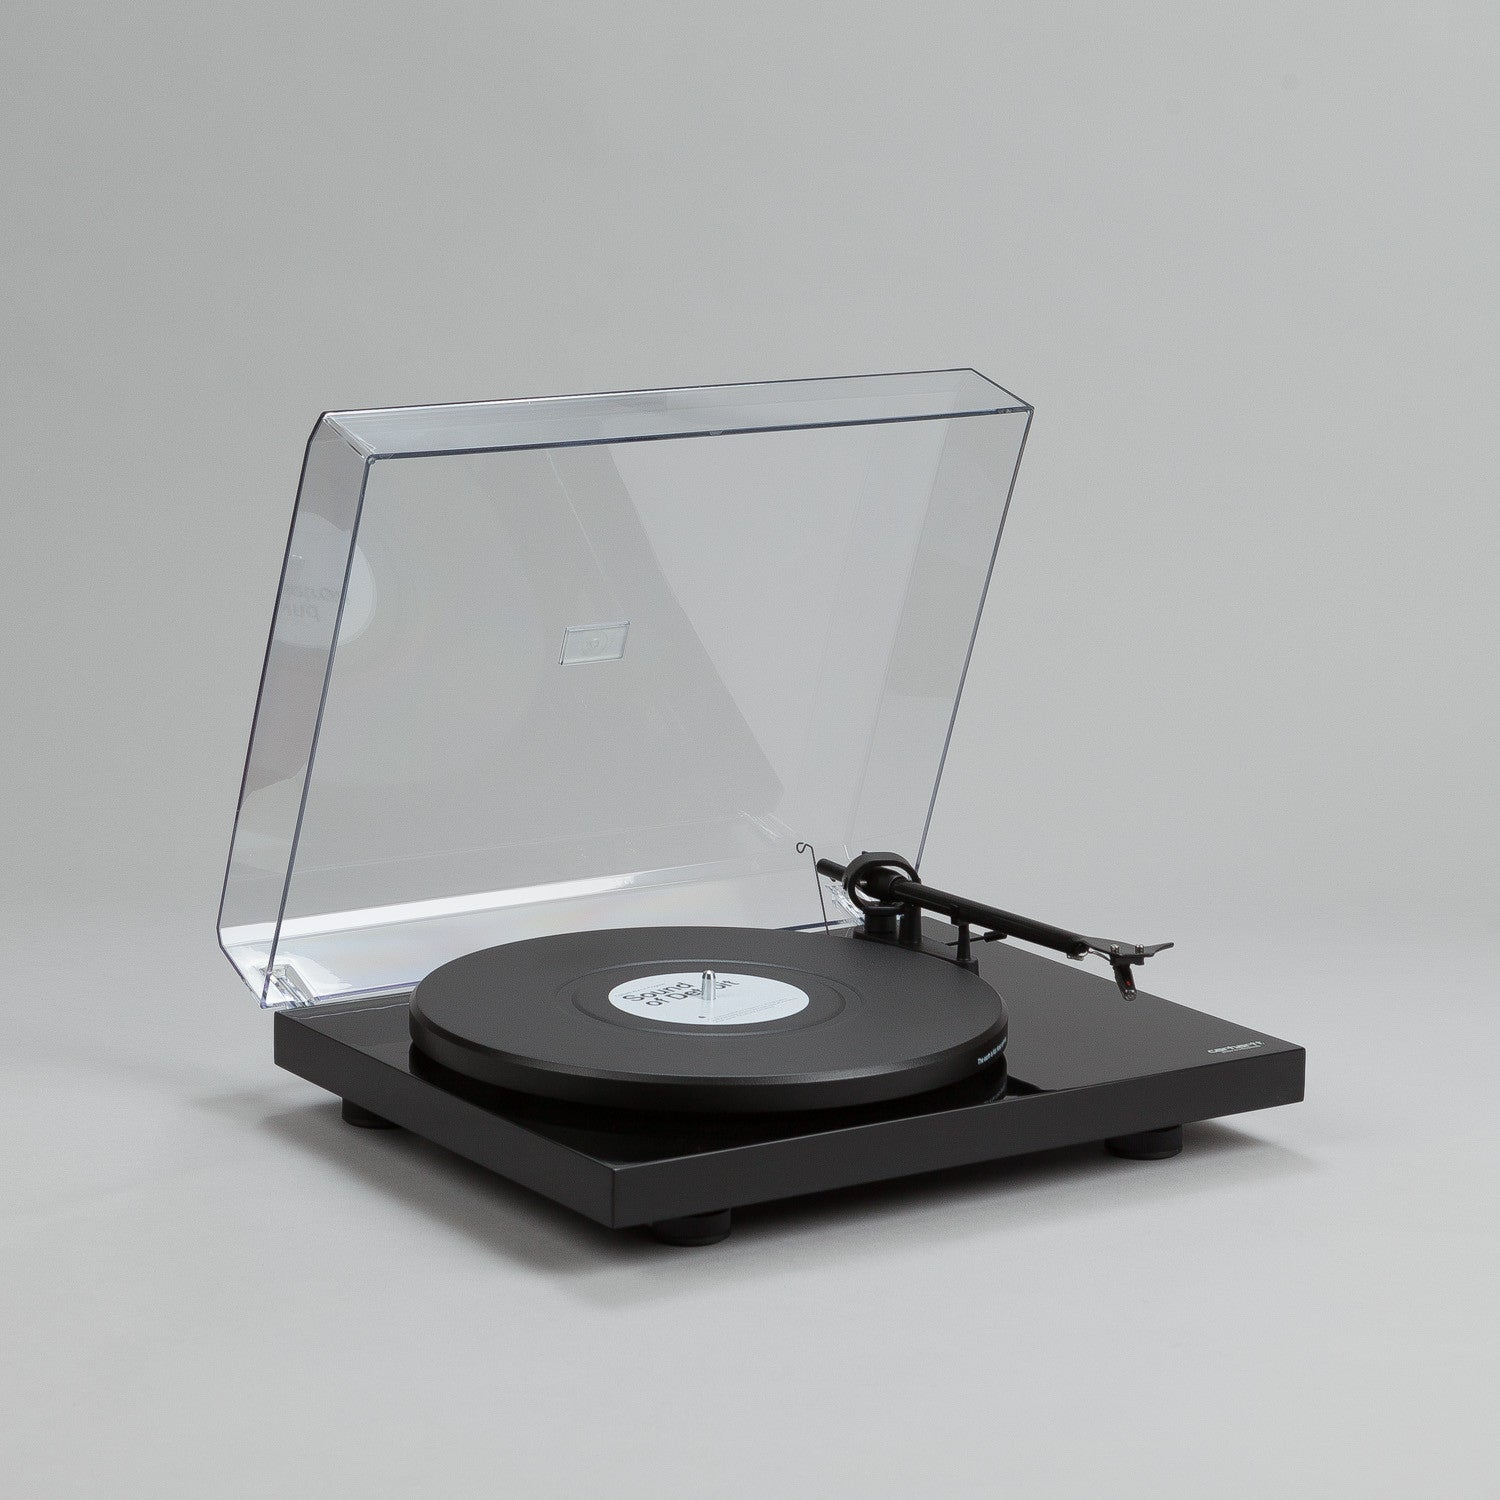 Pro-Ject X Carhartt WIP Debut Carbon Turntable Black